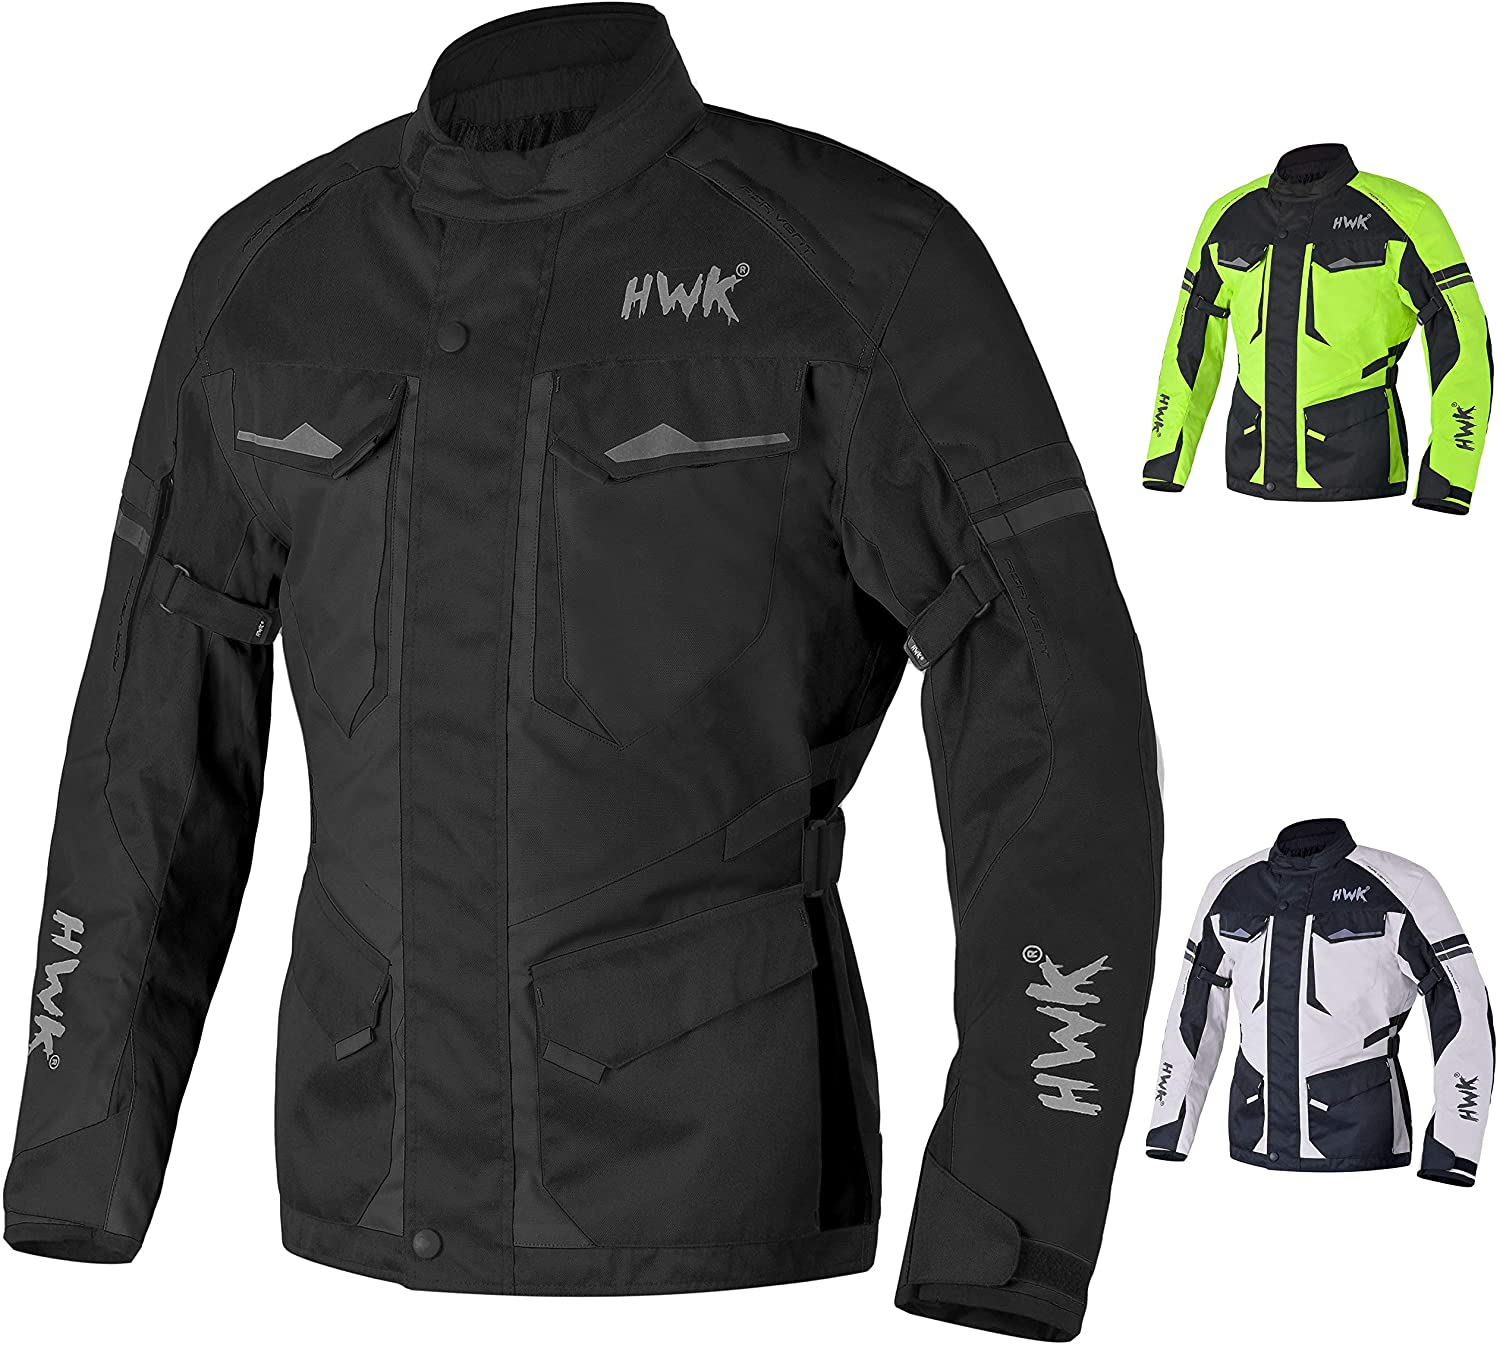 HWK Adventure/Touring Motorcycle Jacket For Men